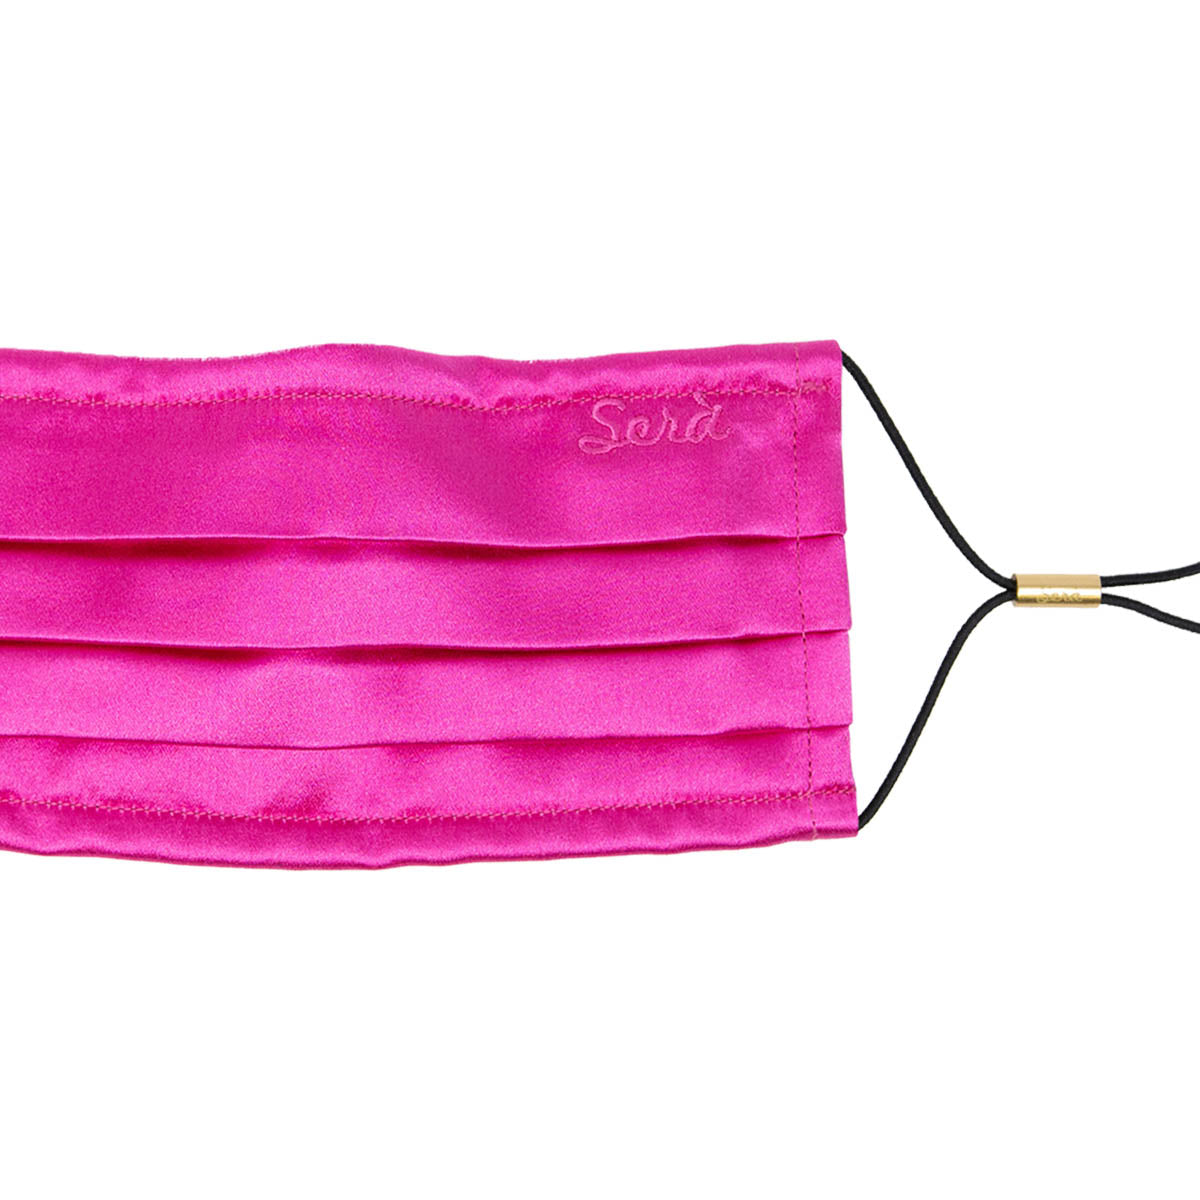 serà fine silk - Pink Silk Satin face cover